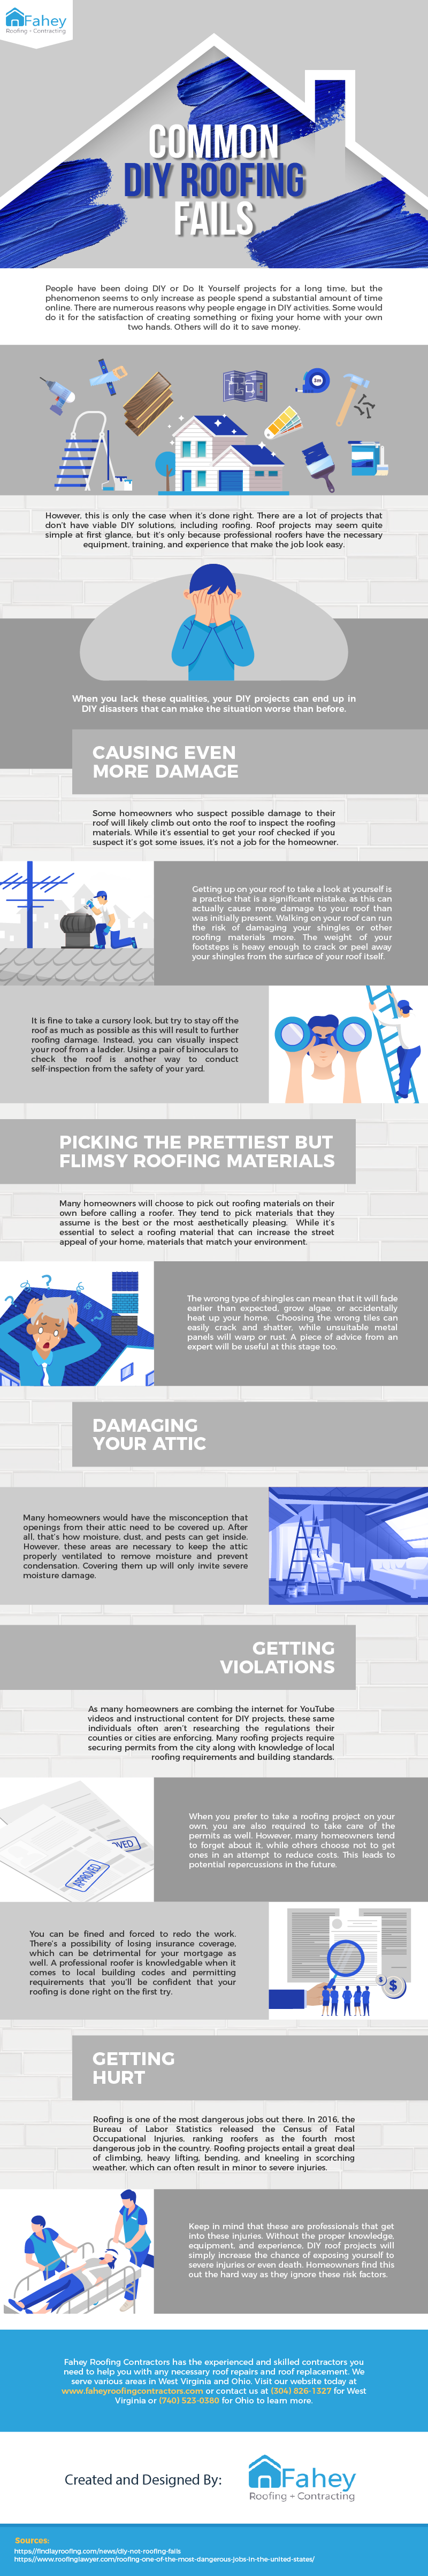 Common DIY Roofing Fails - Infographic